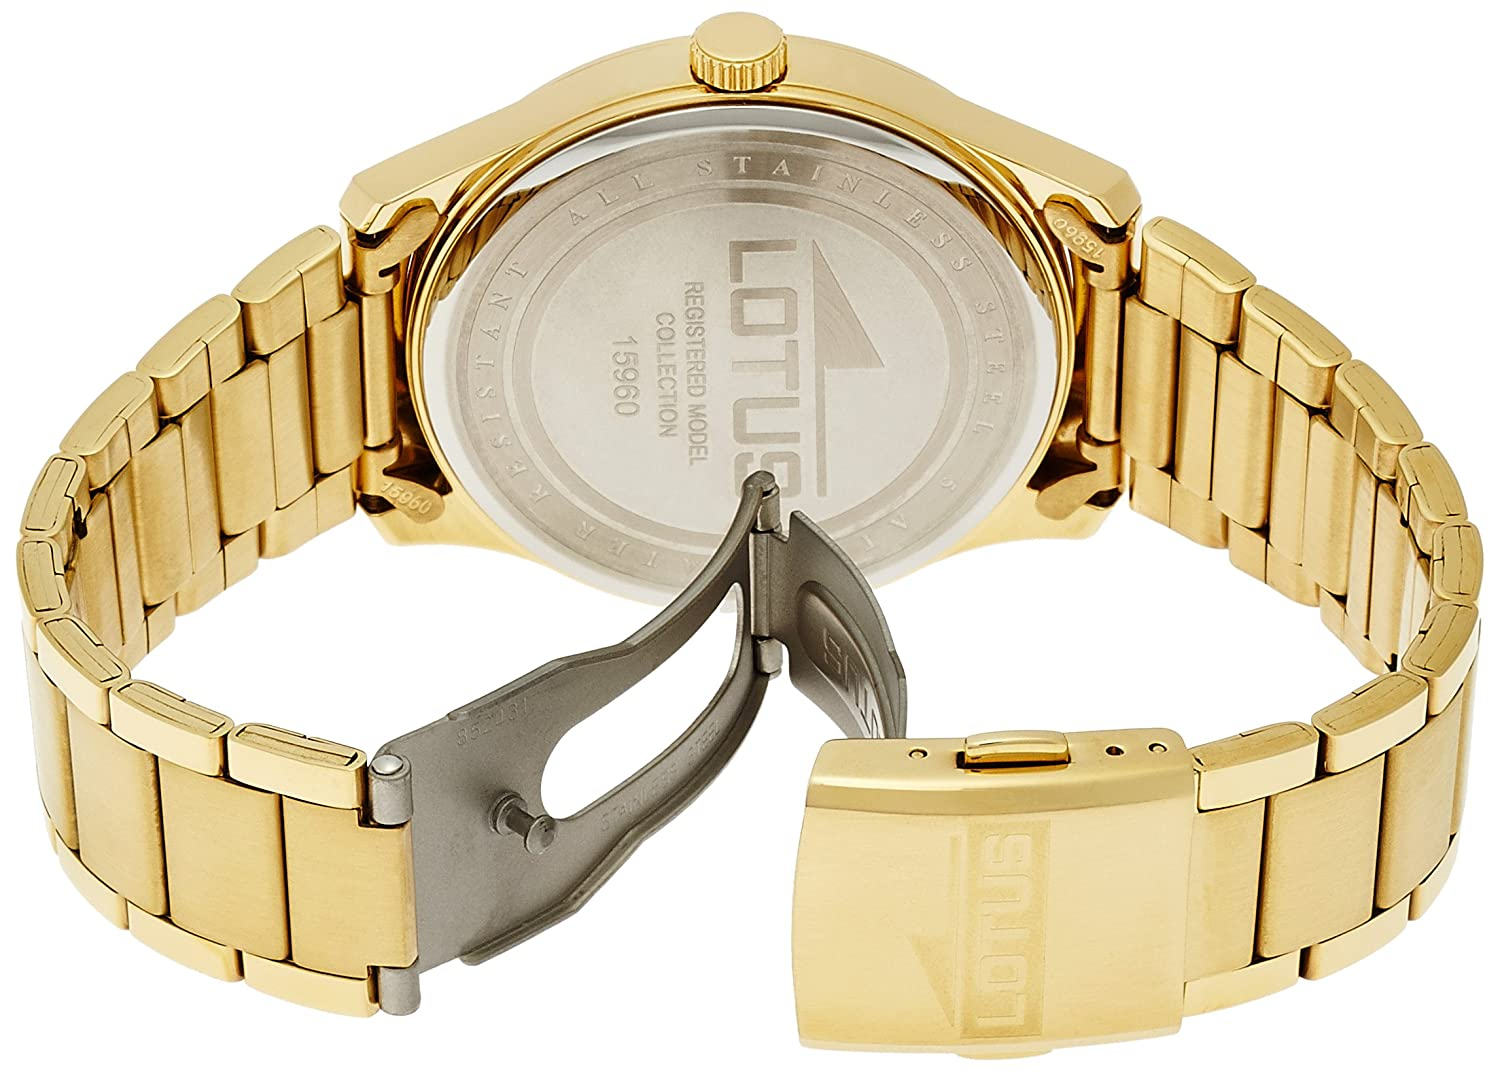 Amazon.com: Mens Watch - Lotus - Gold Platted 5 Micron - 15960/2: Watches